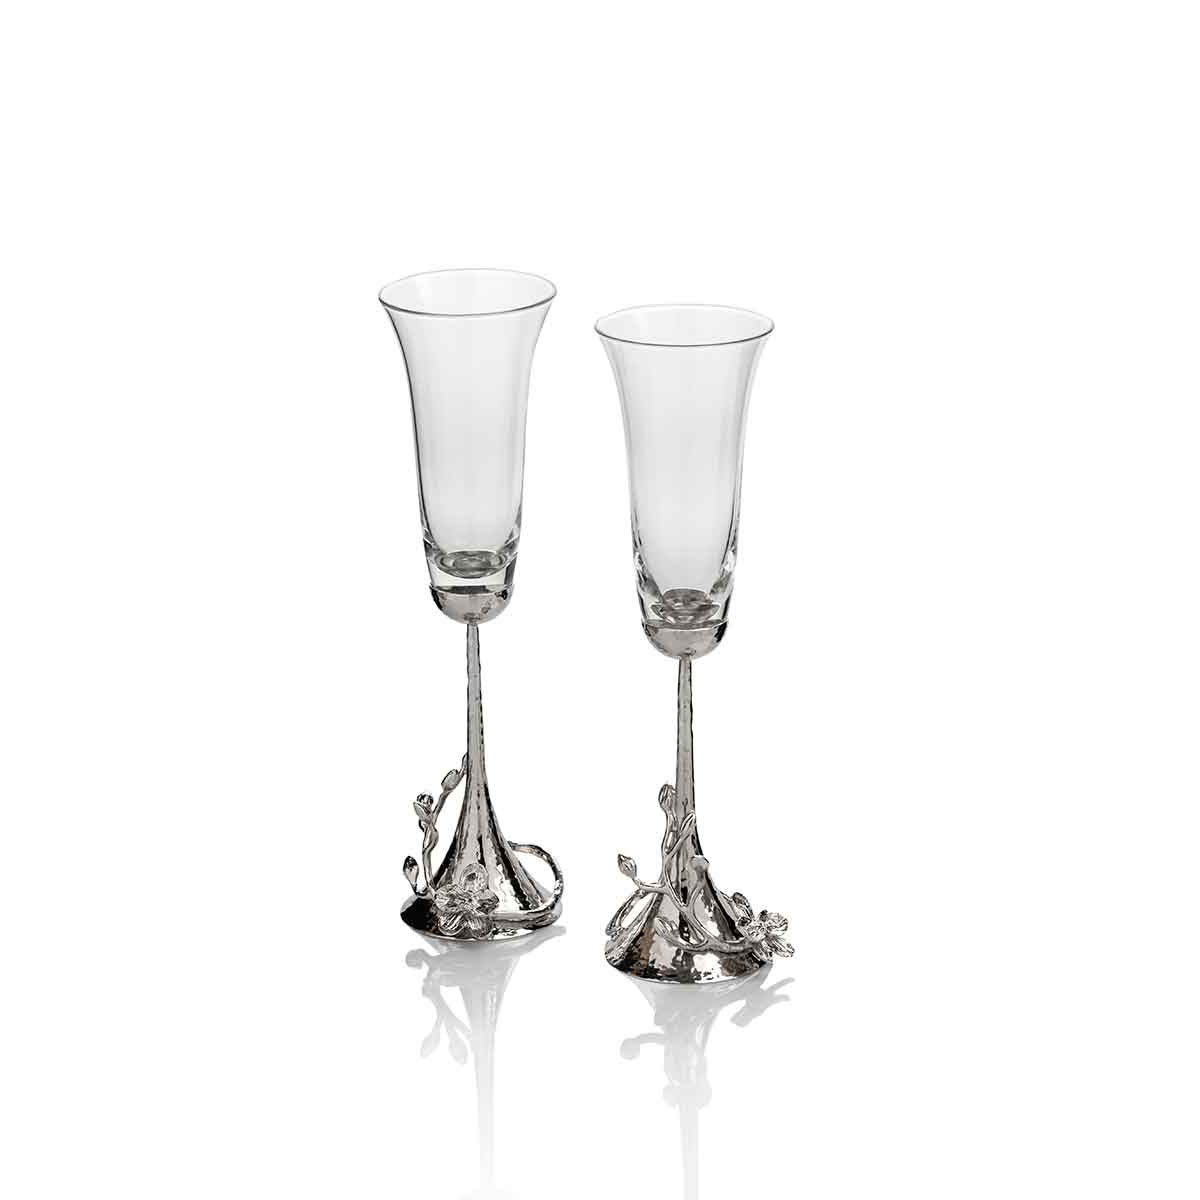 Michael Aram, White Orchid Toasting Crystal Flute, Pair